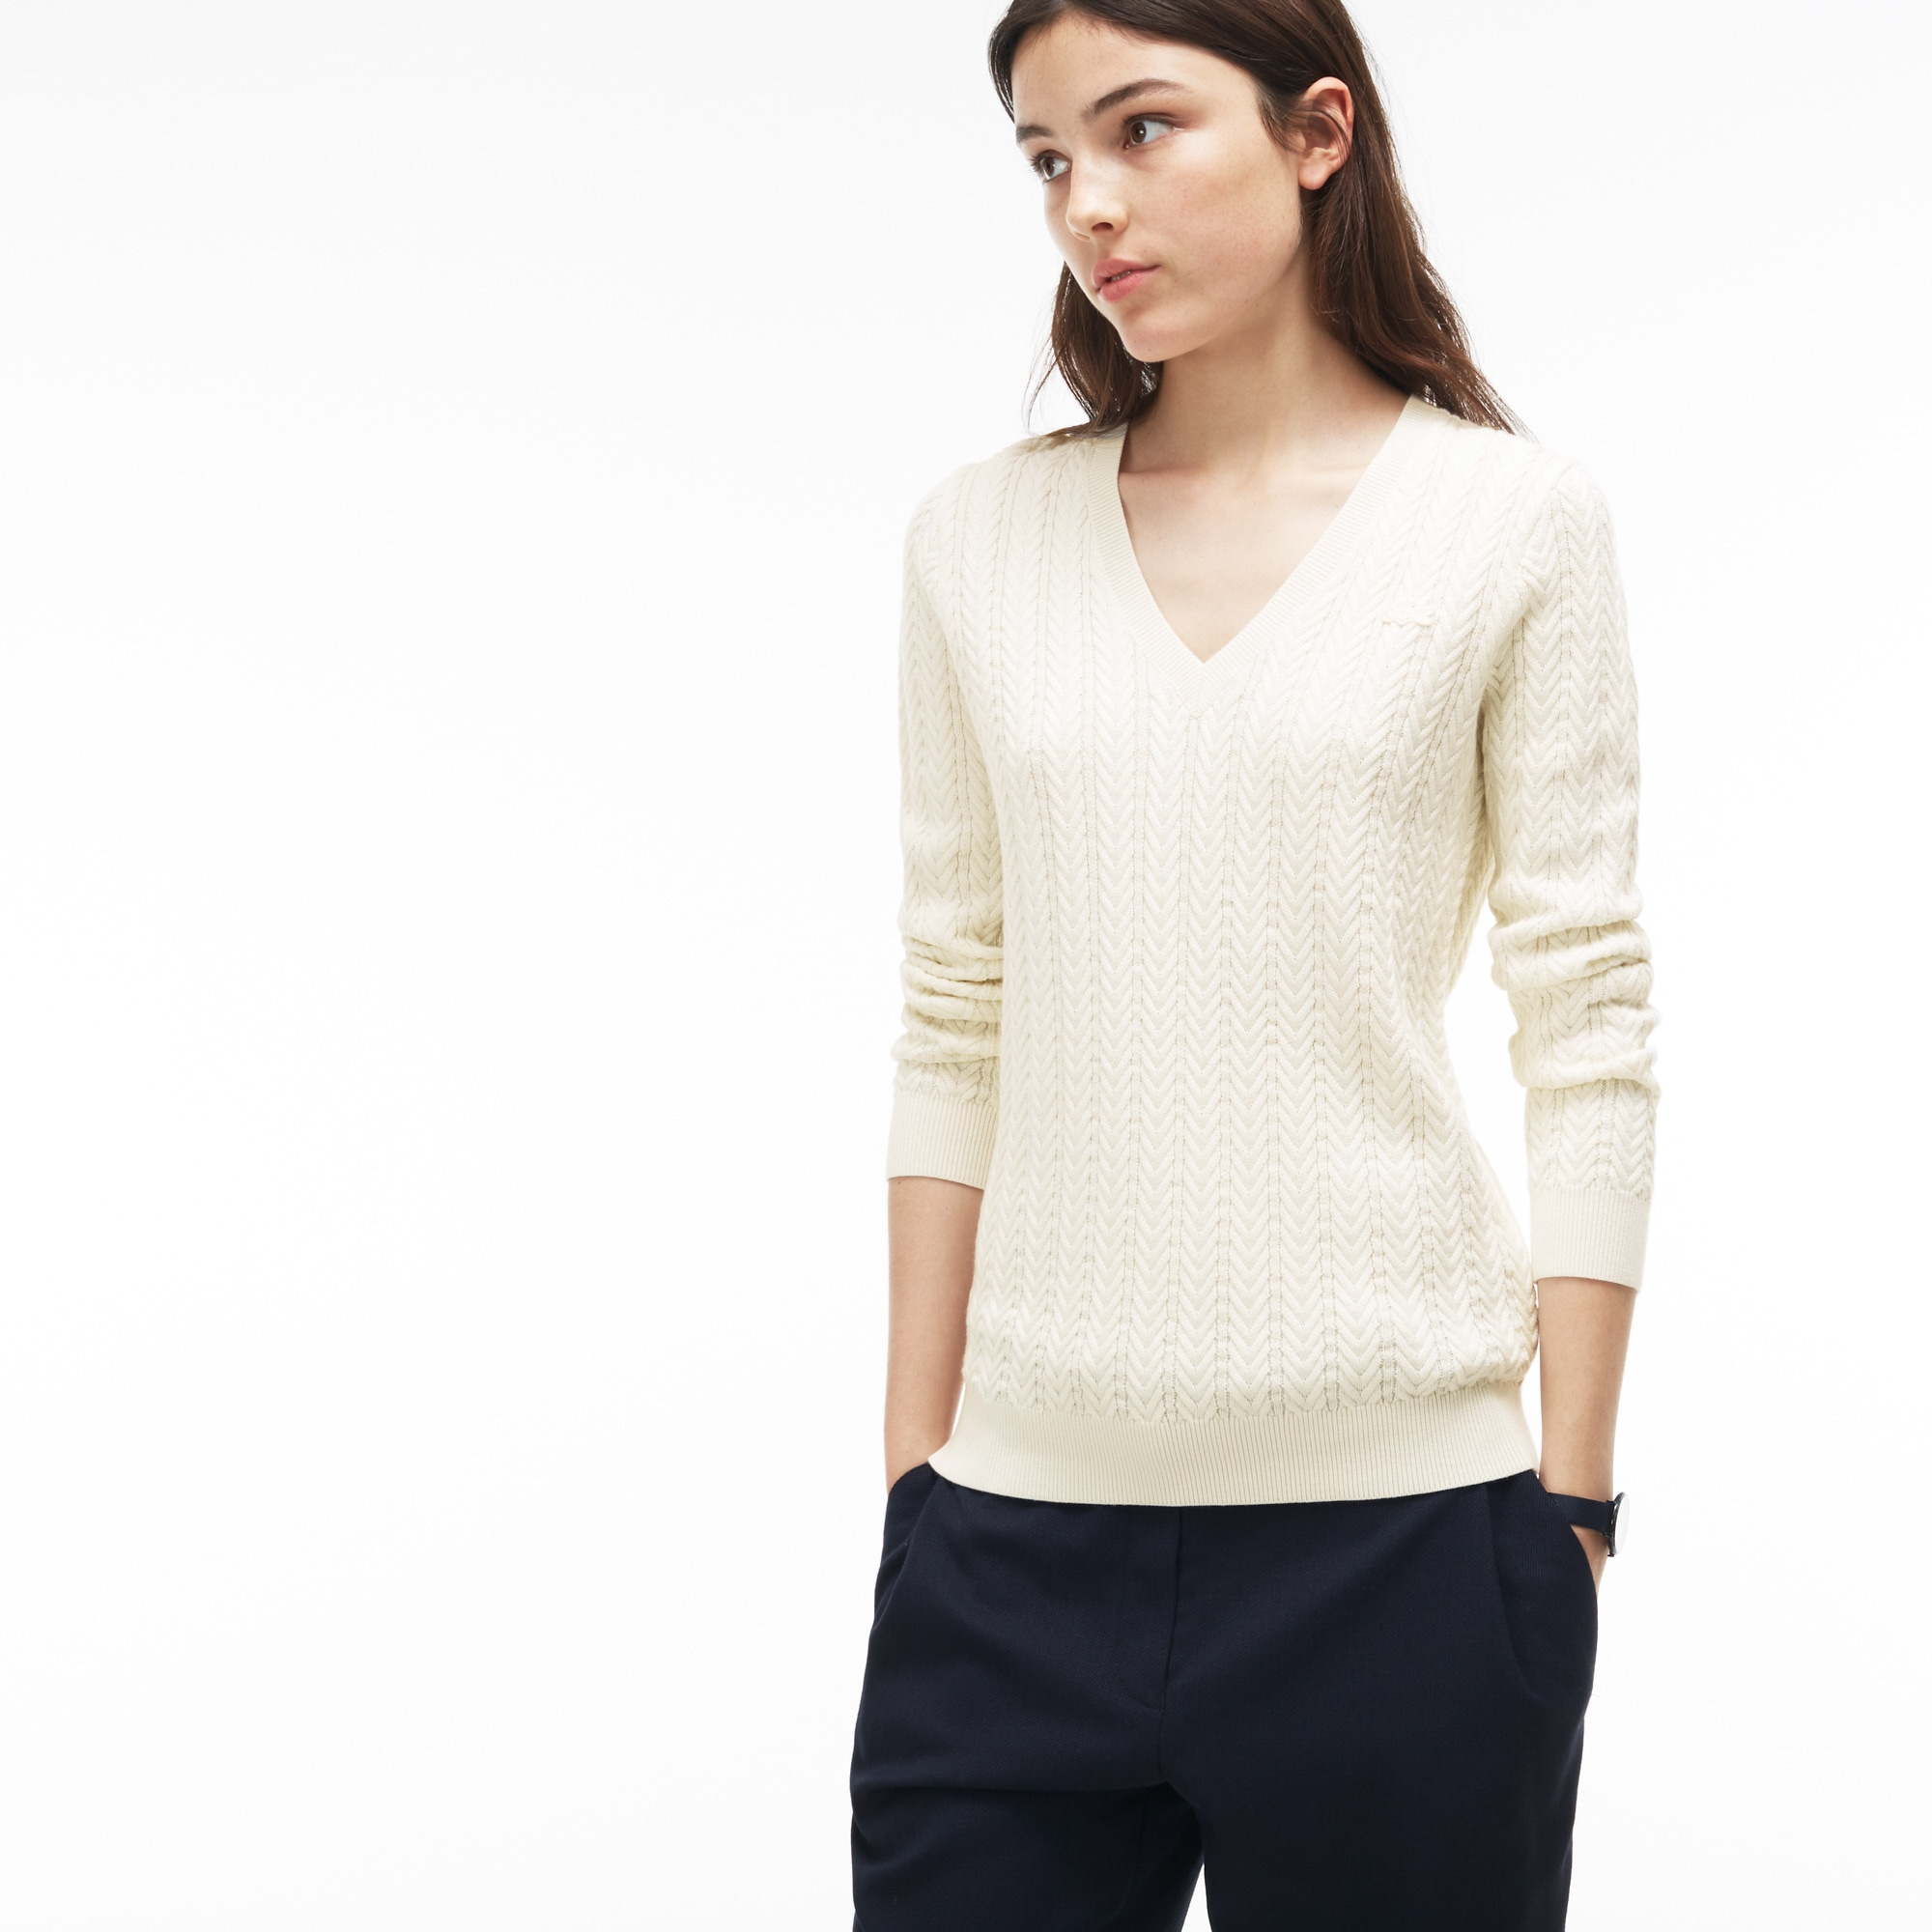 Women's V-neck Cable Knit Sweater